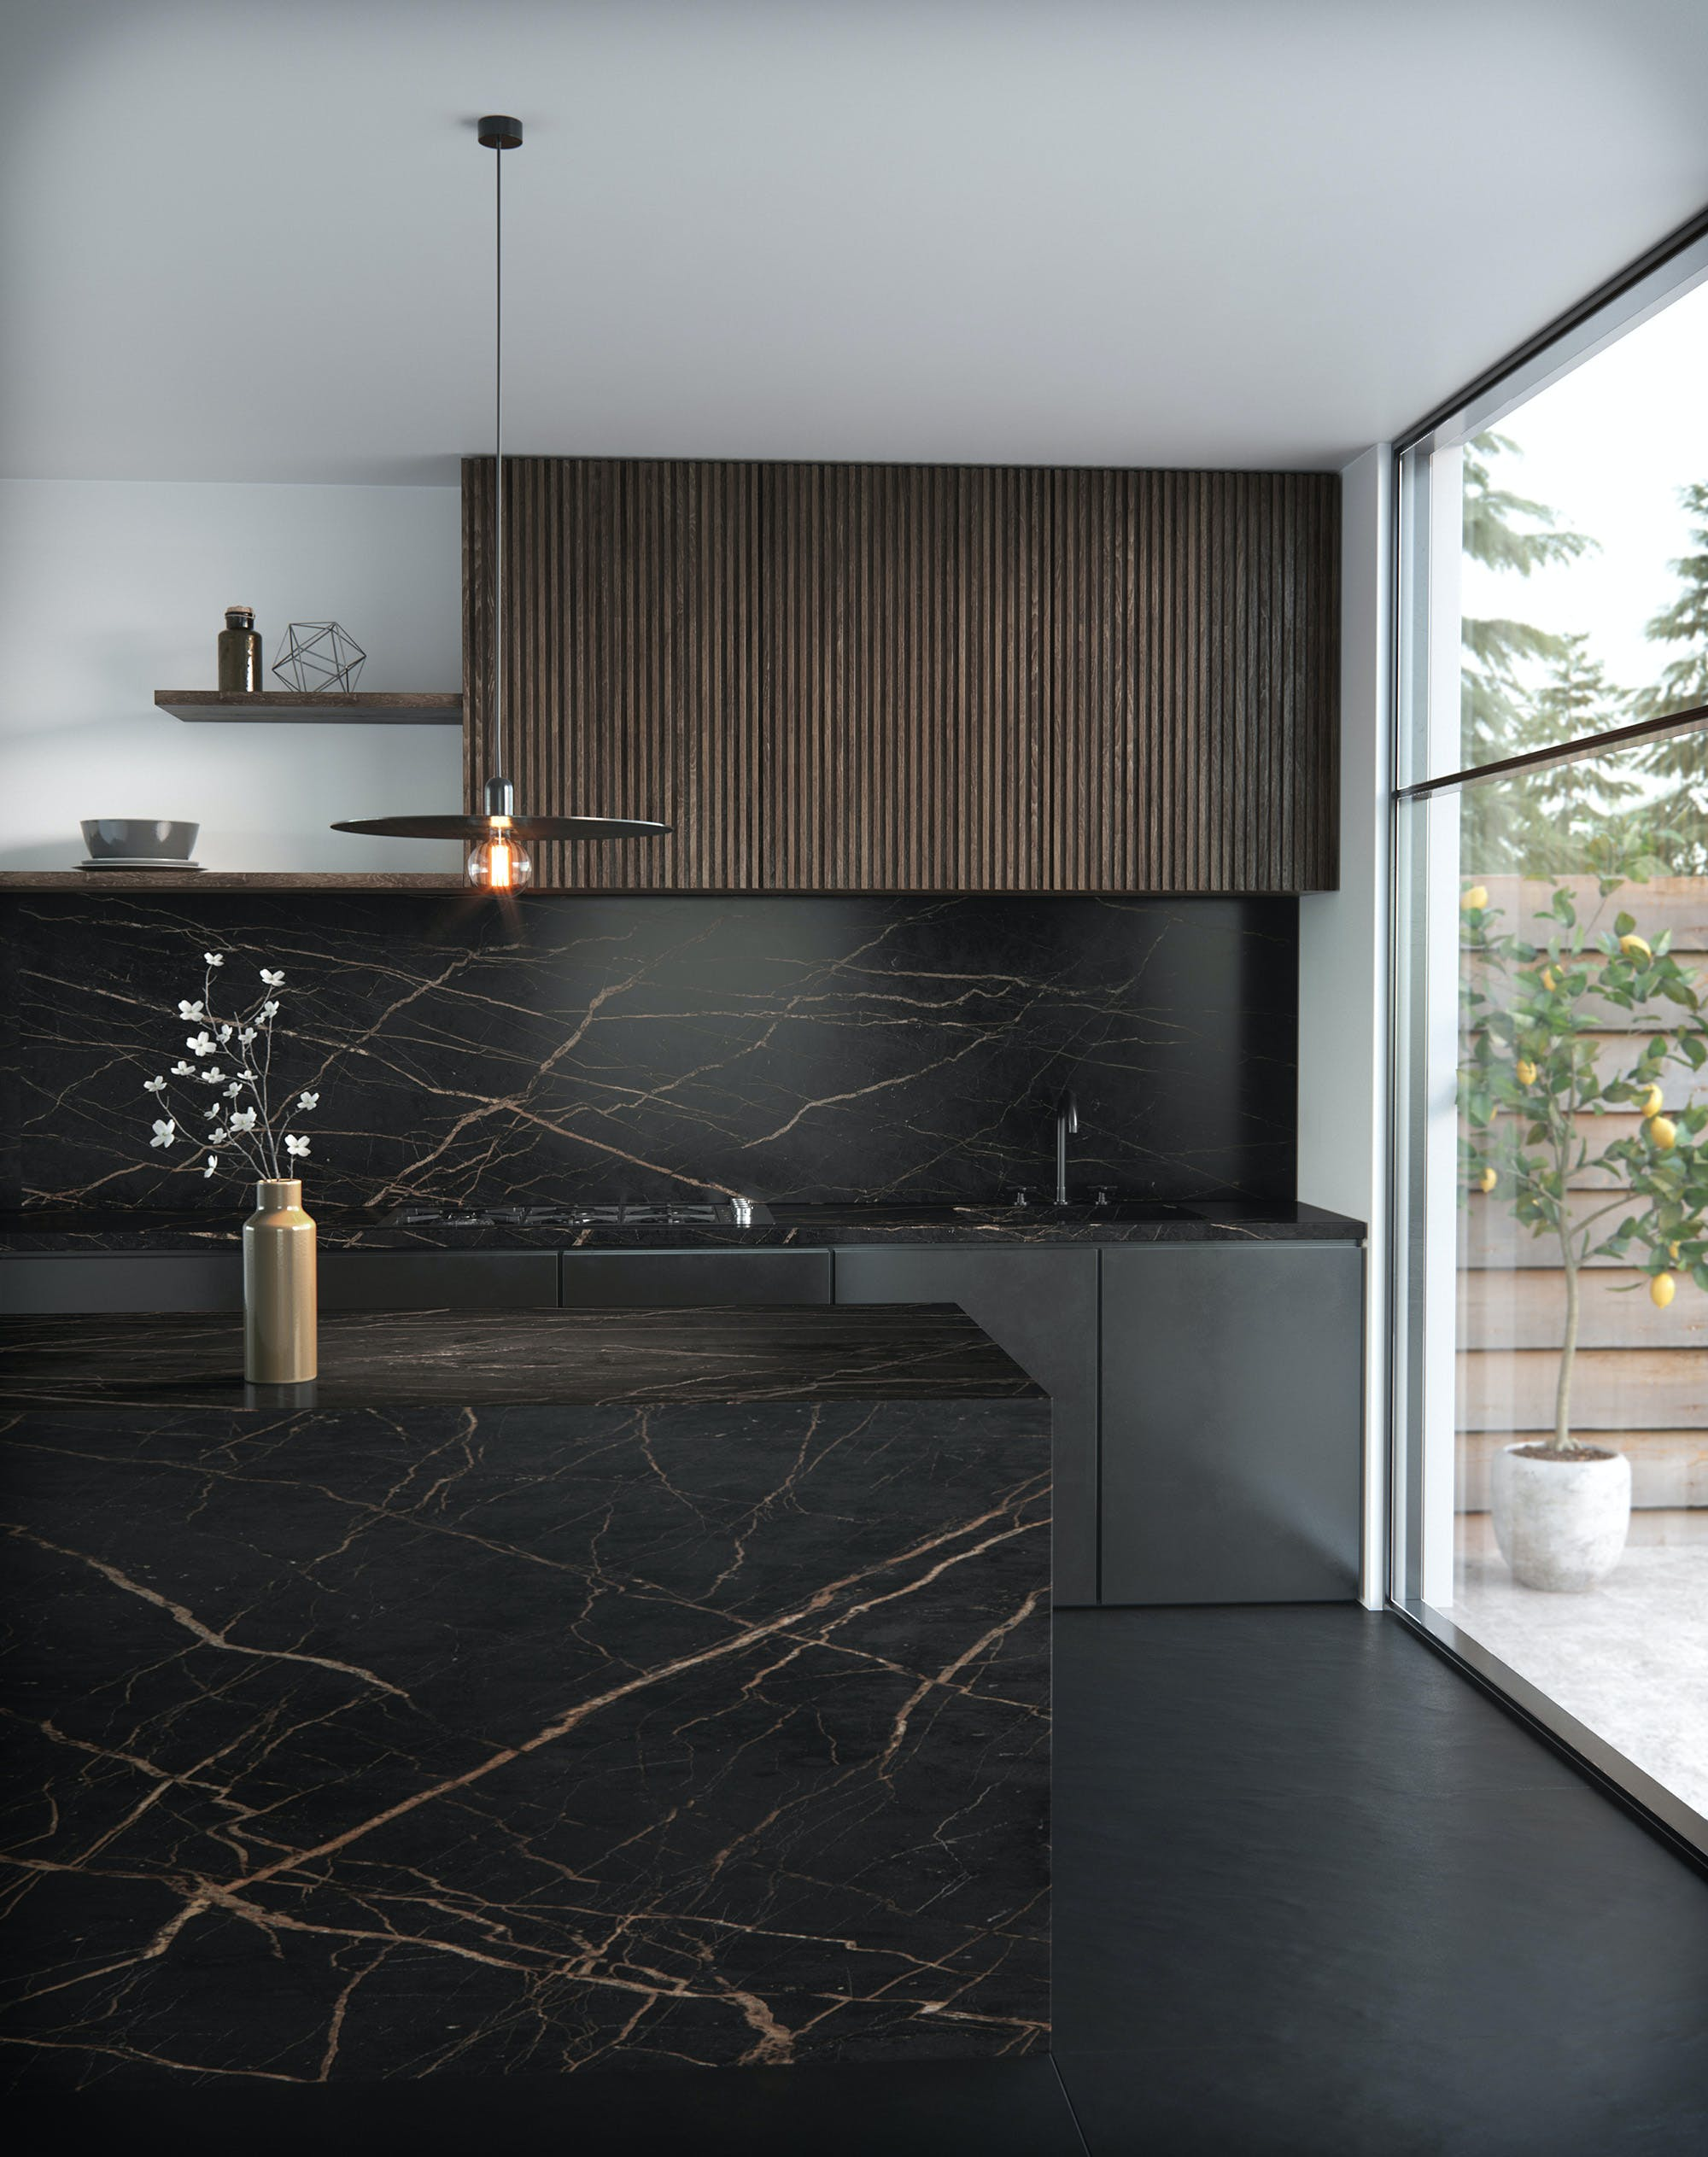 Image of Dekton Kitchen Laurent 4 1 in Spending more time at home? Get the most from your kitchen with these ideas - Cosentino